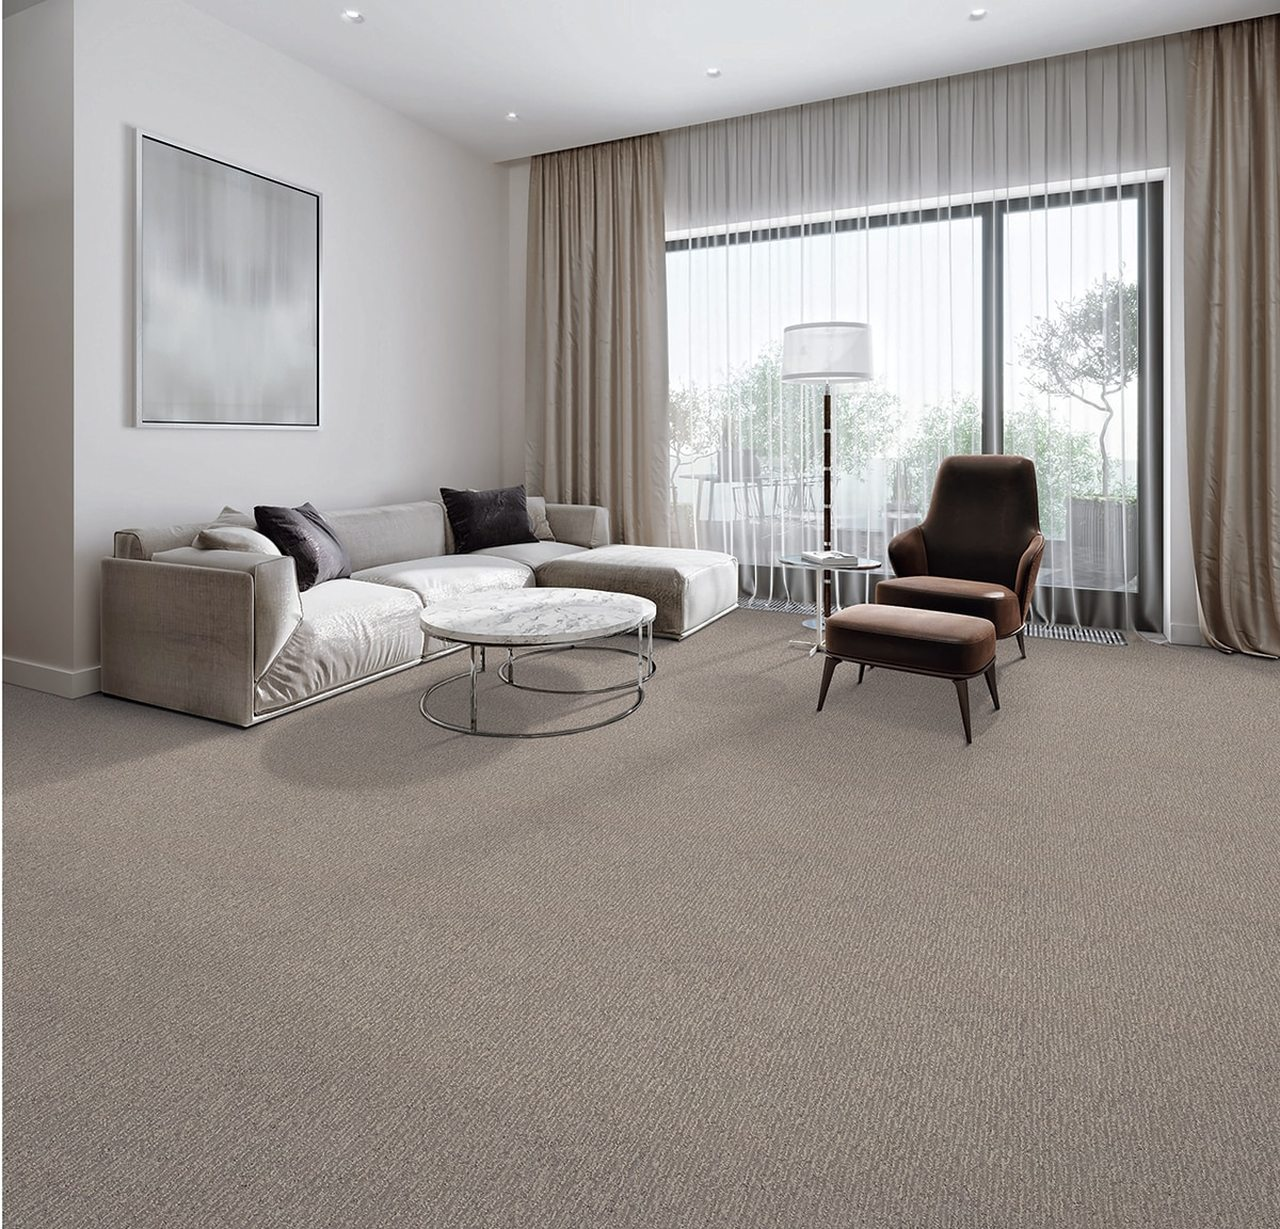 dream weaver carpet review image